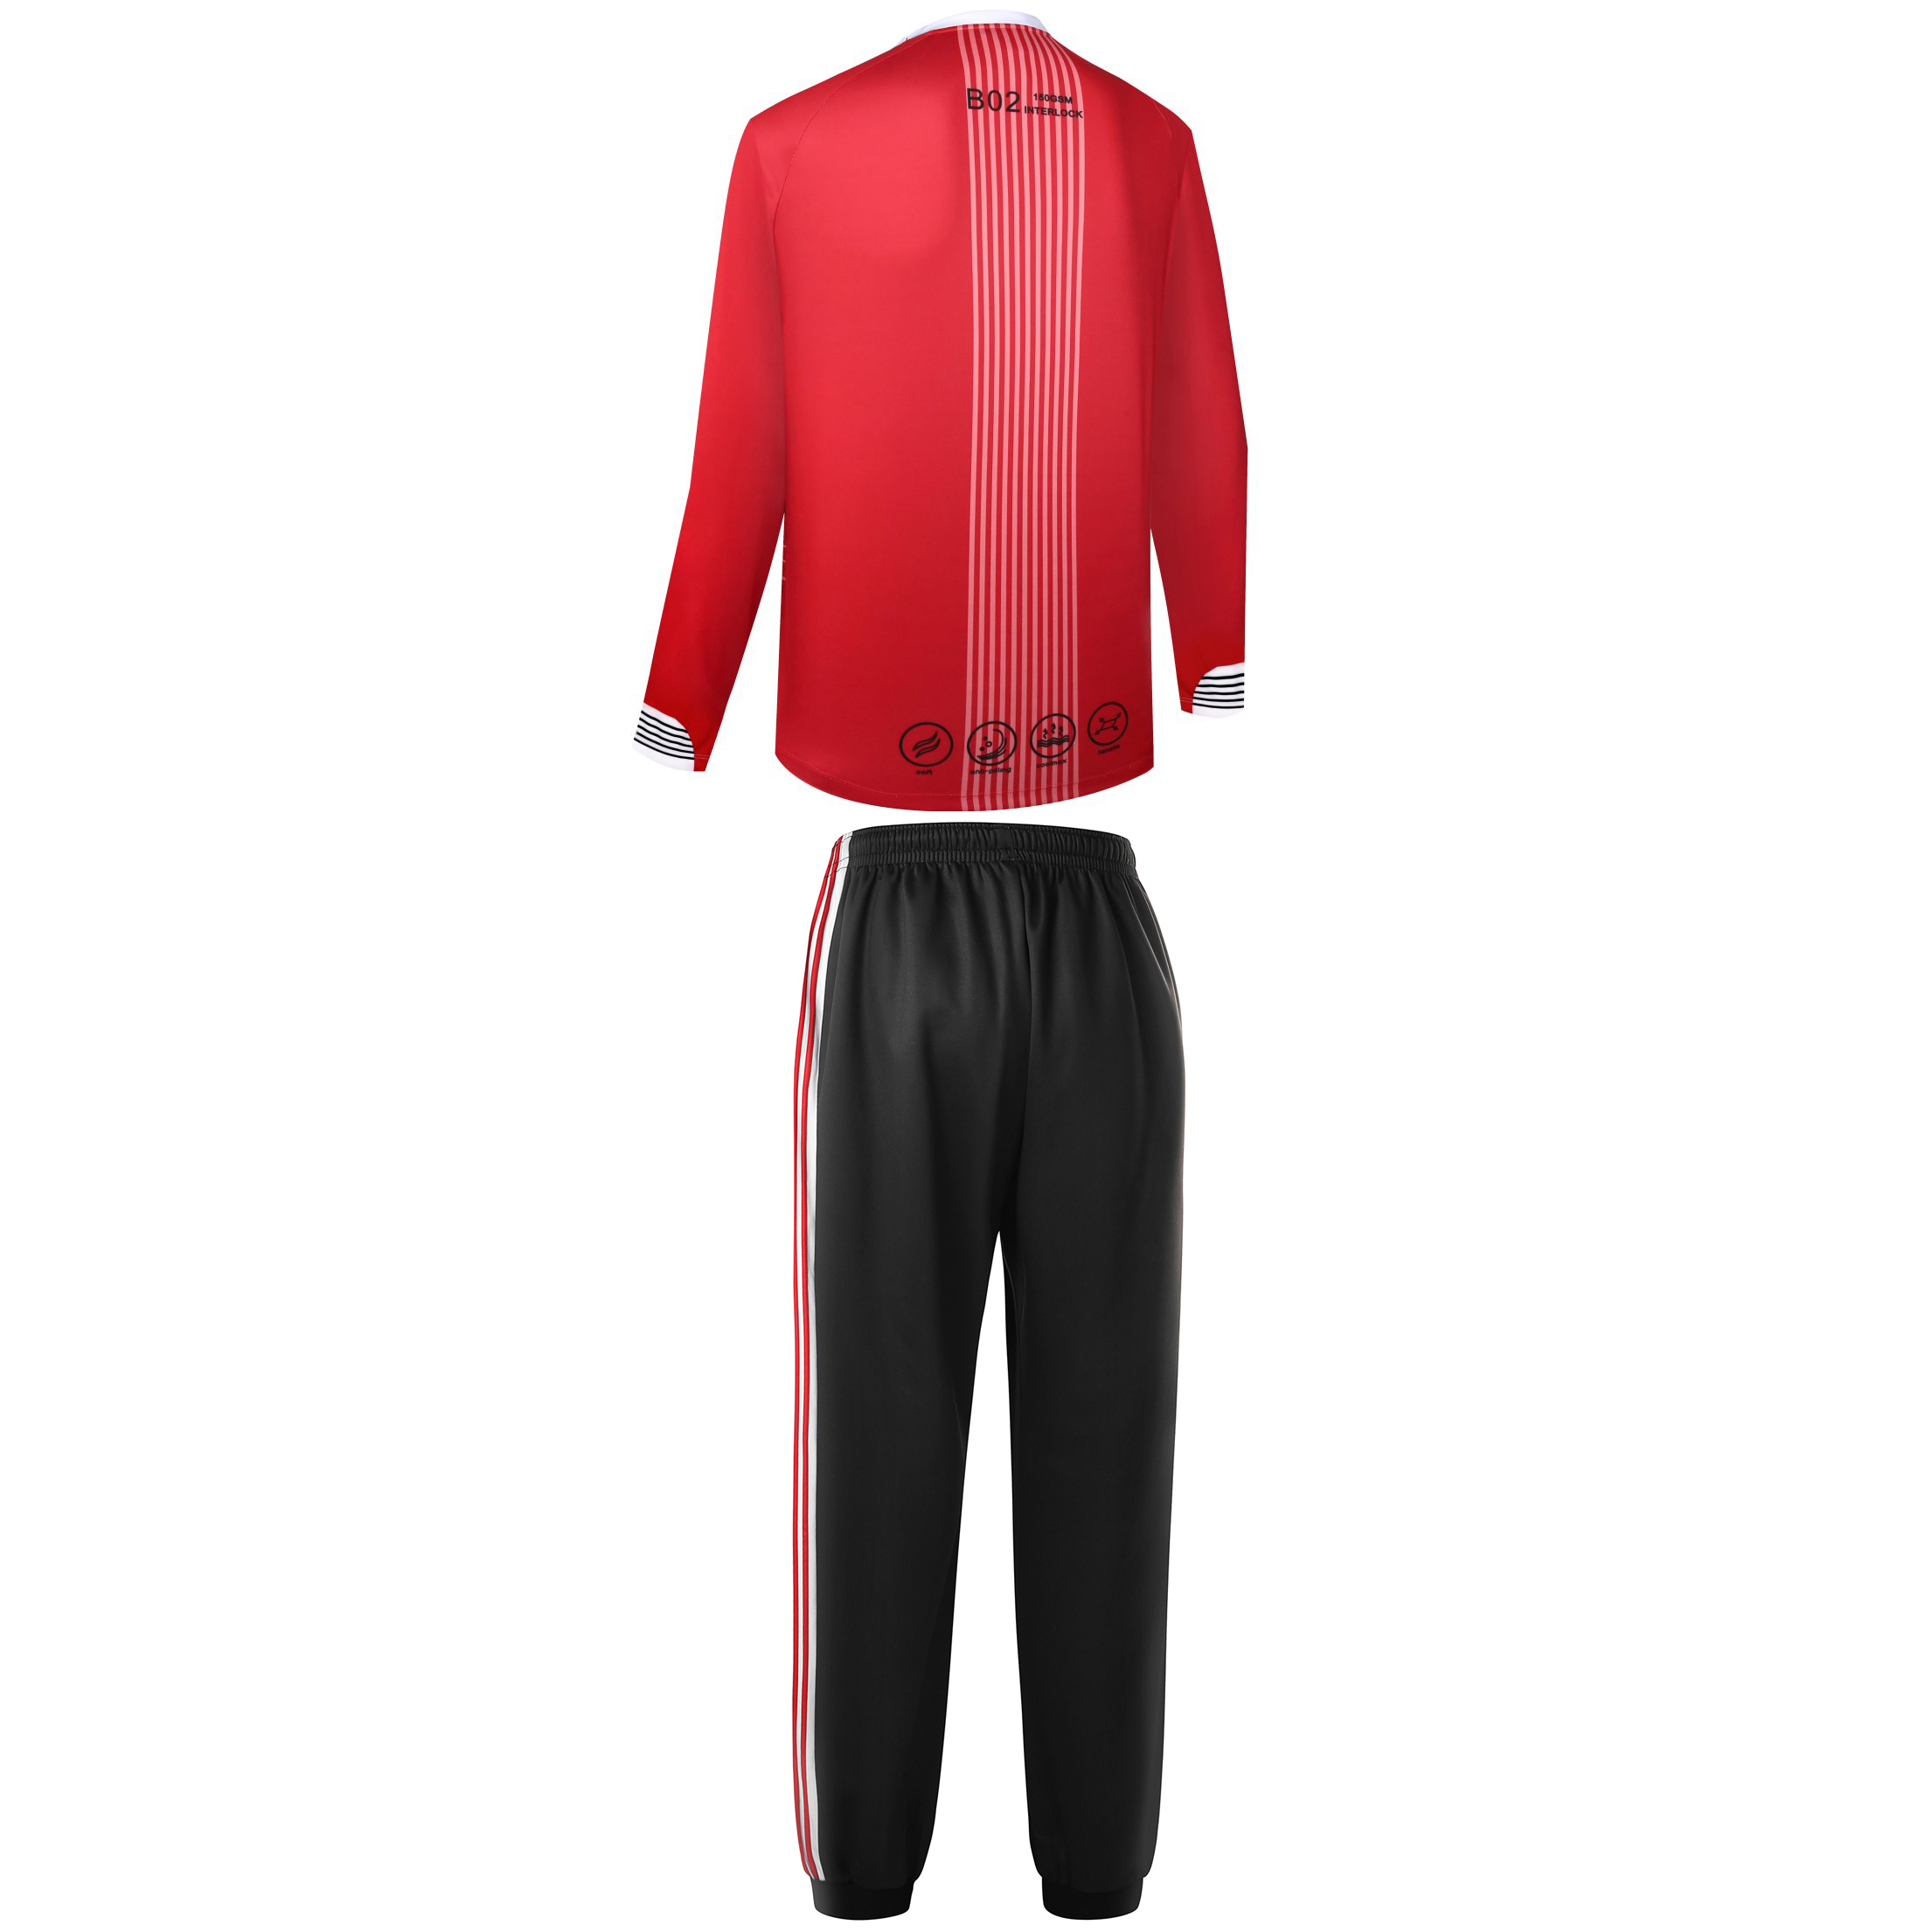 ROLLER SPORTS TEAM CLOTHING-L0307RBW10